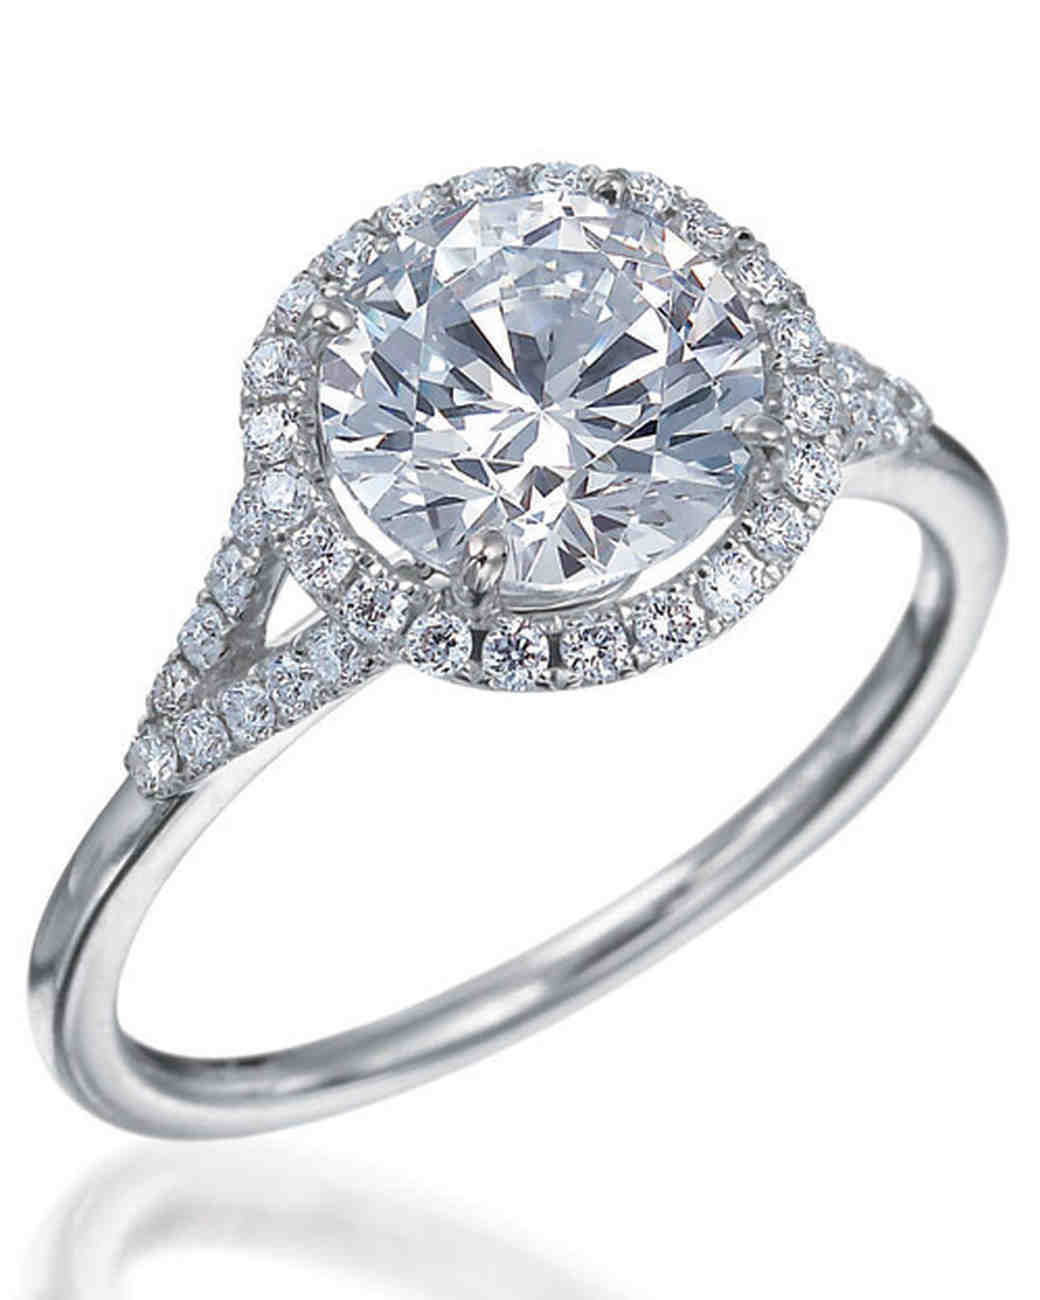 ring flat engagement stewart weddings wedding diamond round vert cut limor martha rings